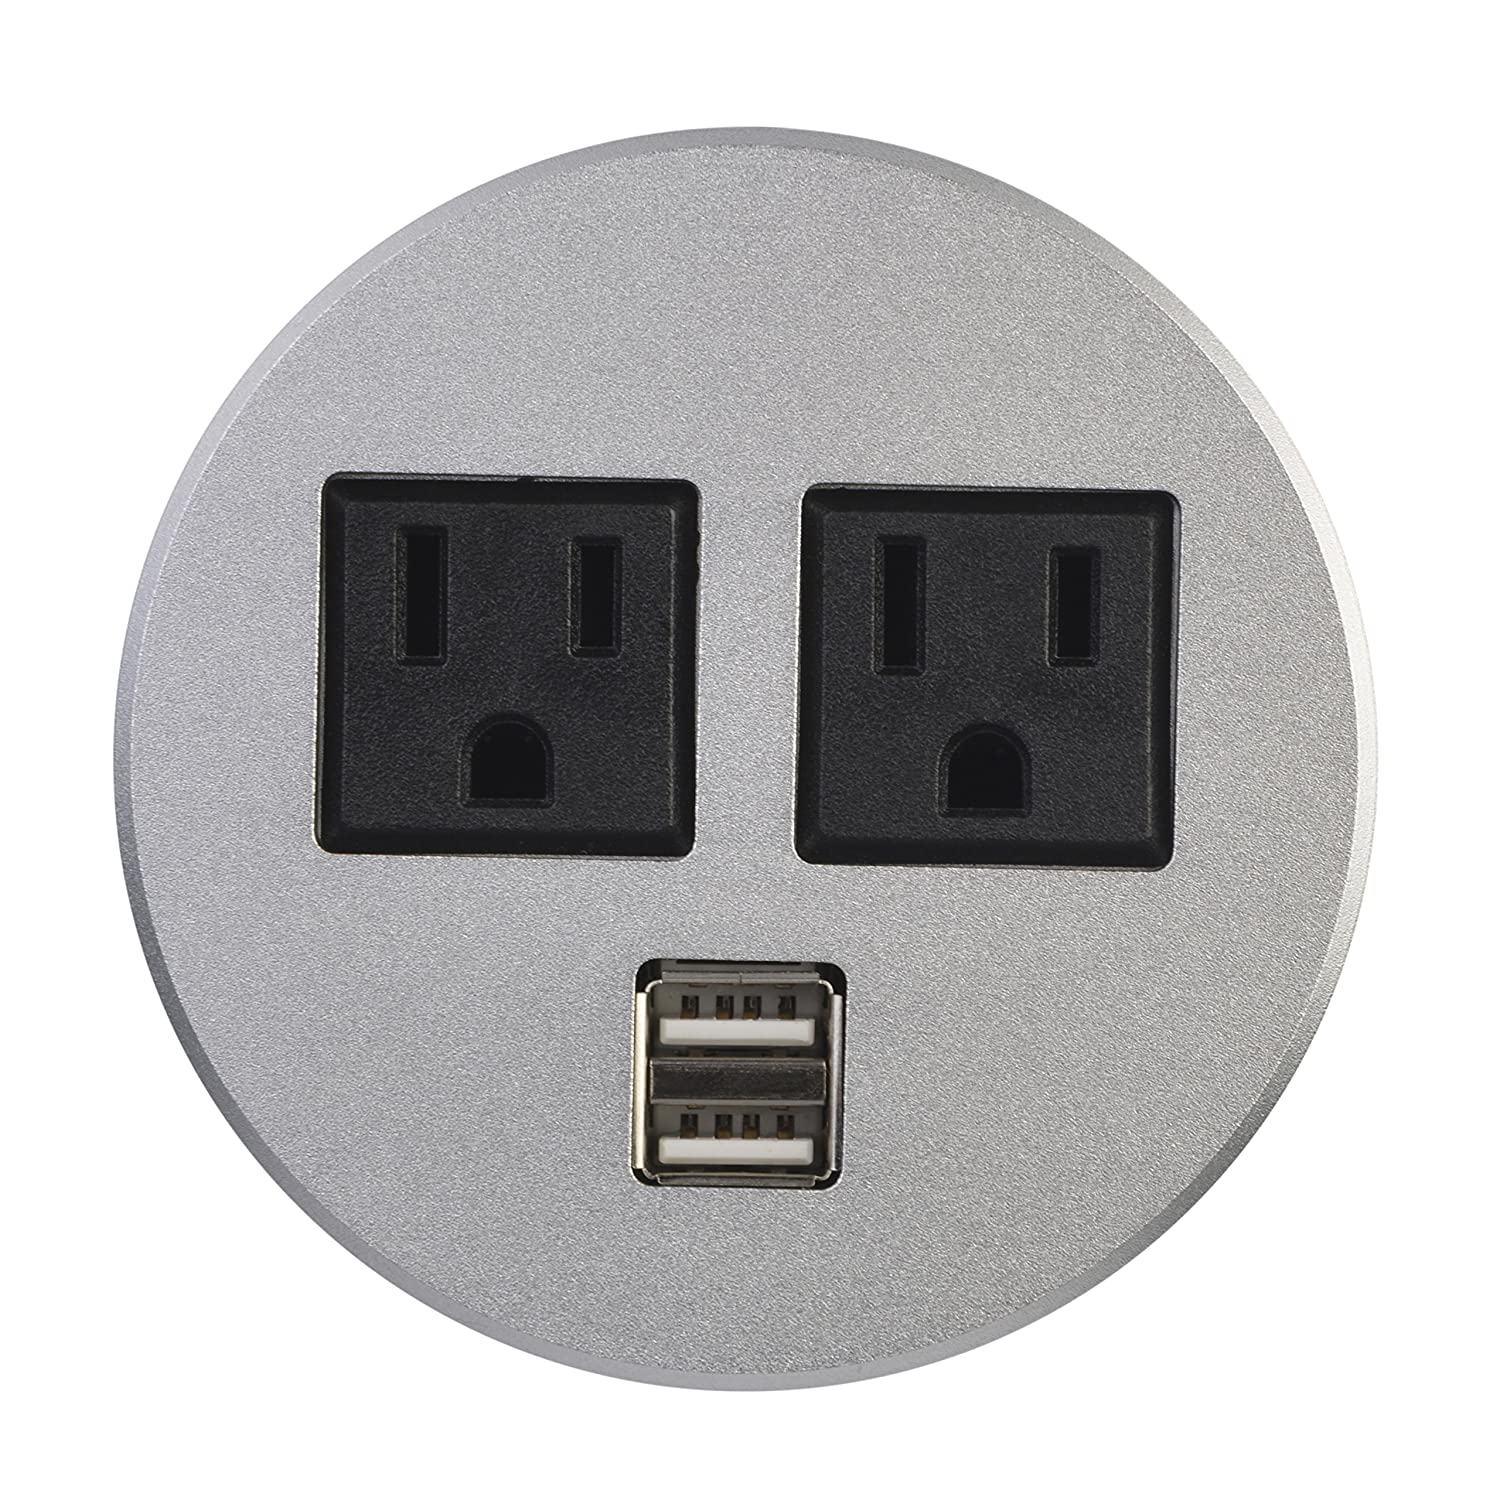 Professional Power Hub Data Tap grommet With 2 X AC Outlet And 2 X USB Port (Black) Kungfuking 4330213652